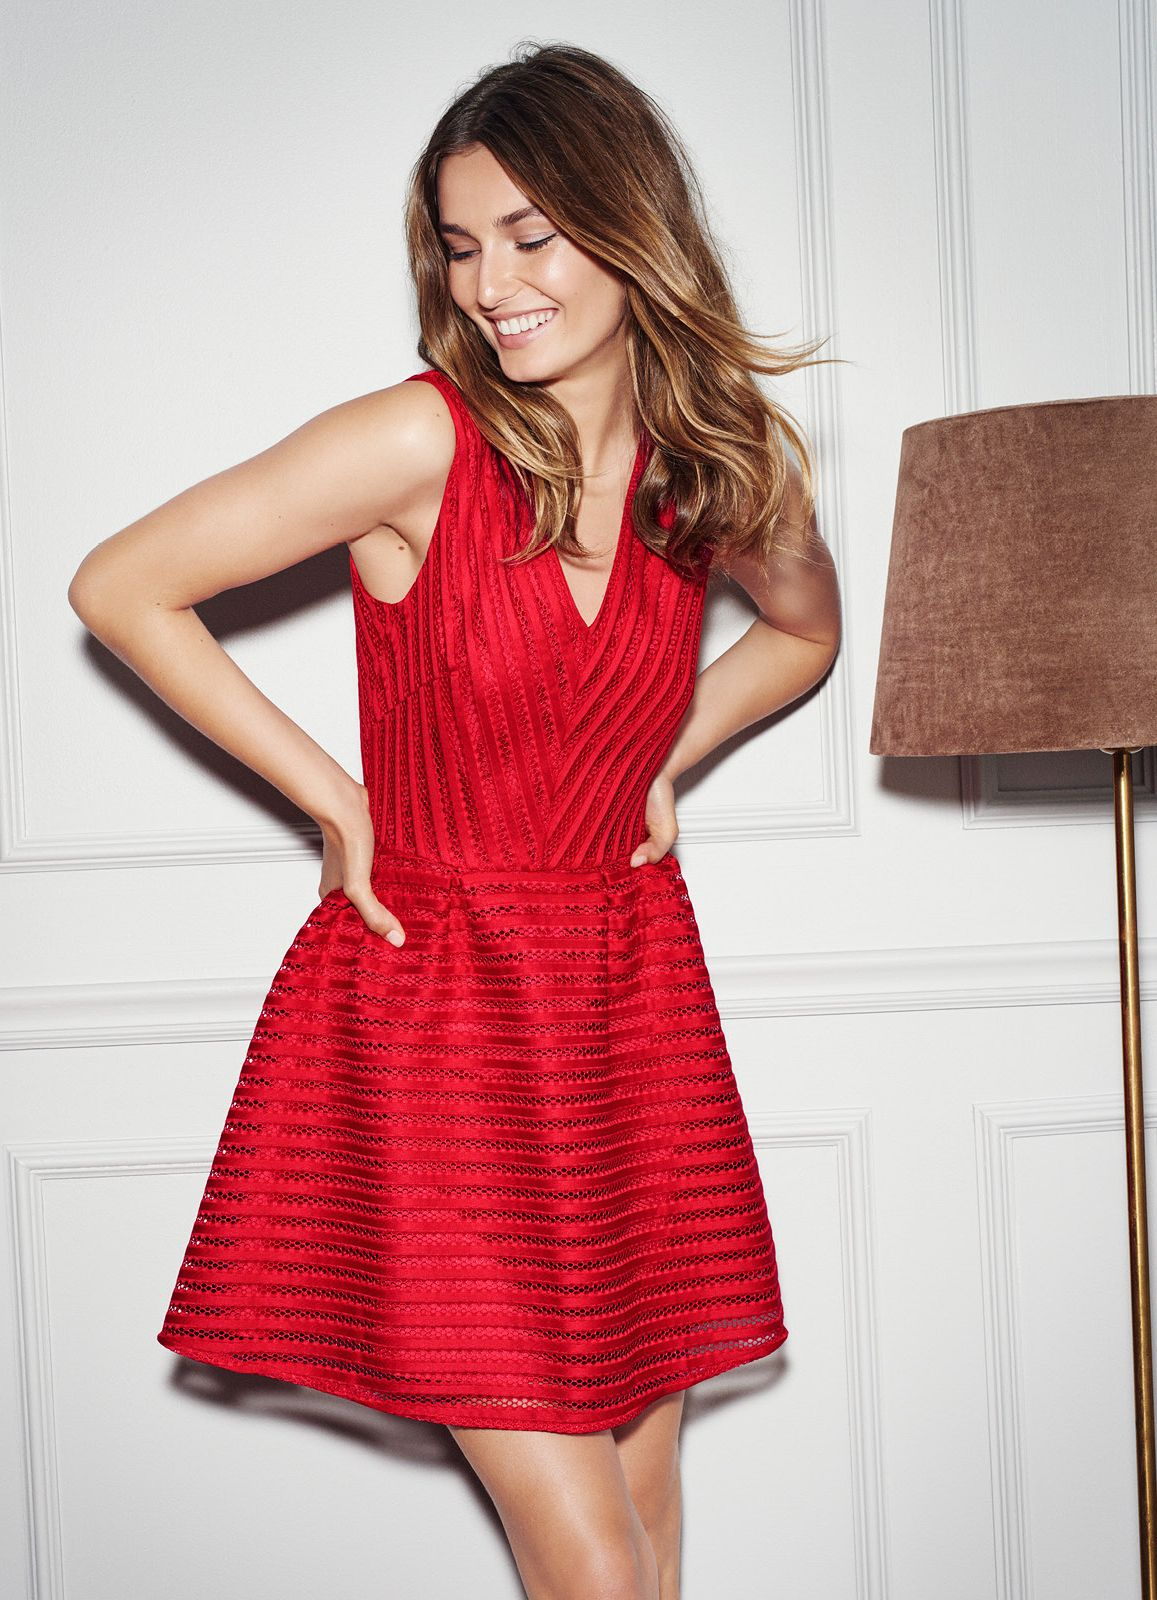 H M Red Dress Fashion Woman Dresses Line